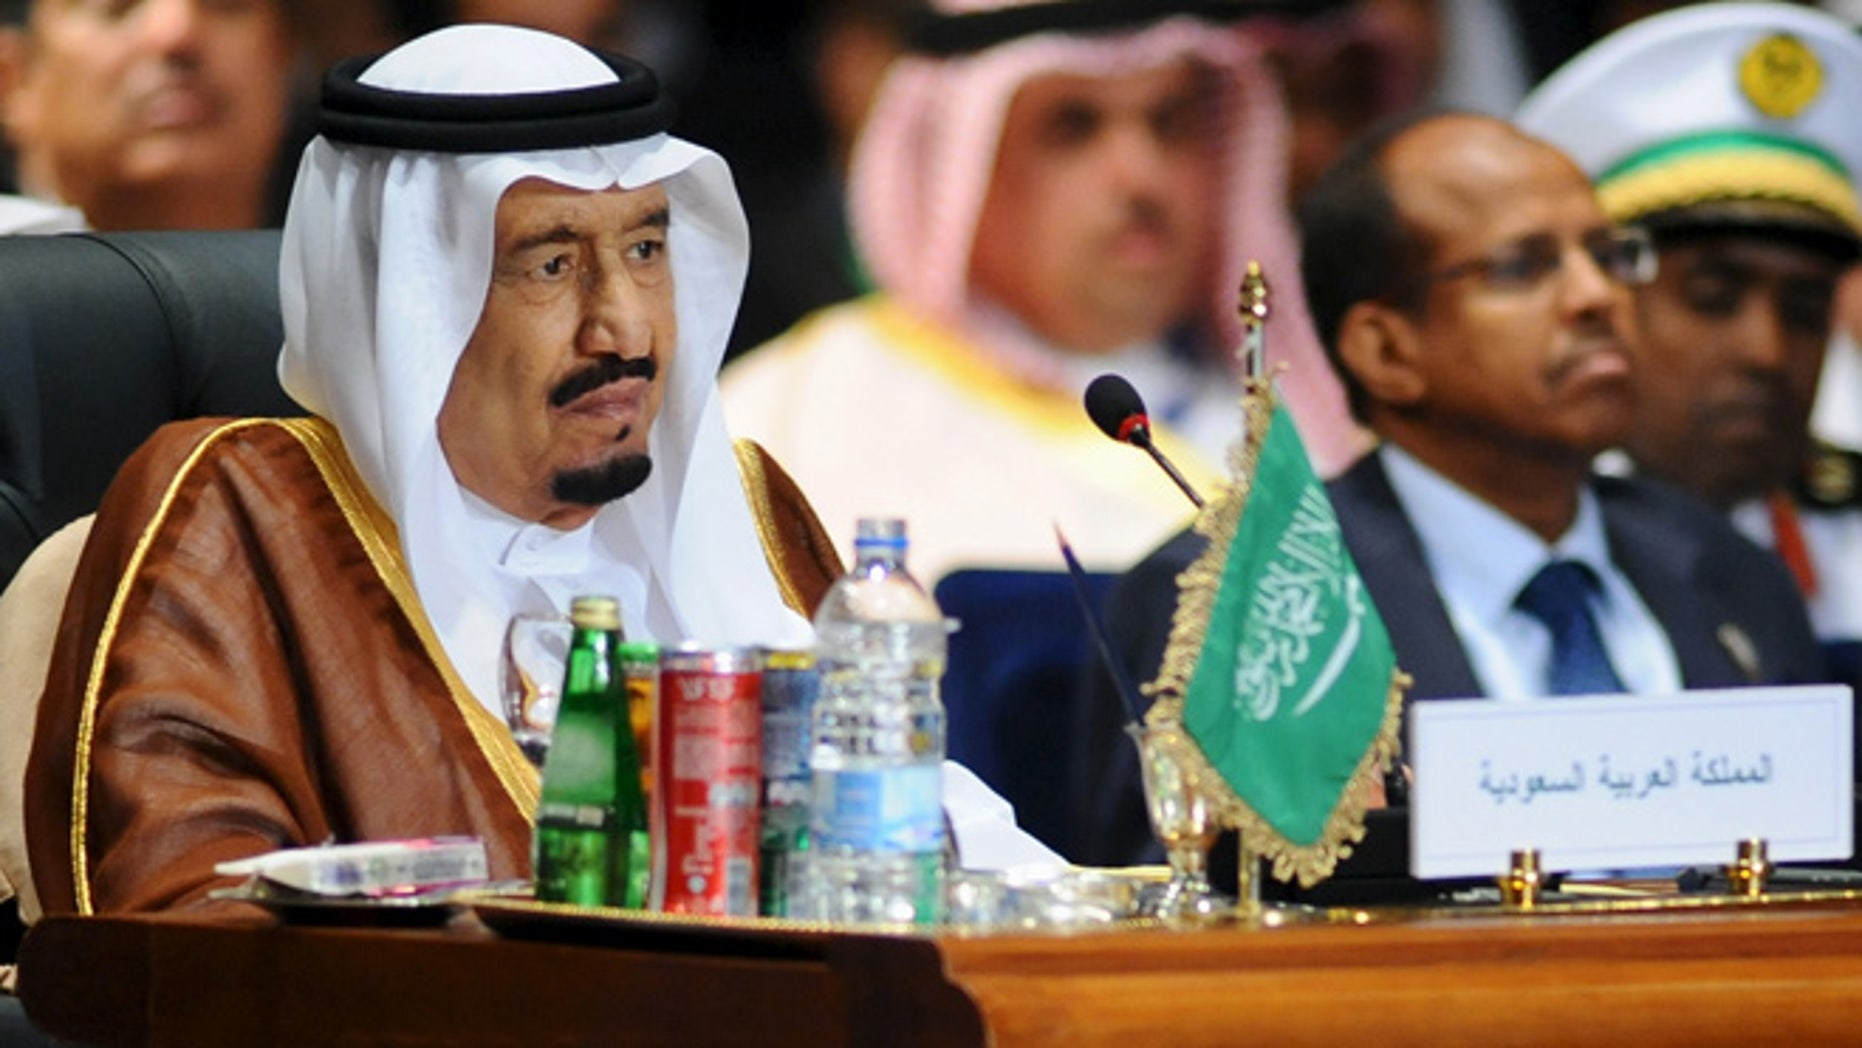 Mar 28, 2015: Saudi King Salman attends the opening meeting of the Arab Summit in Sharm el-Sheikh, in the South Sinai governorate, south of Cairo.